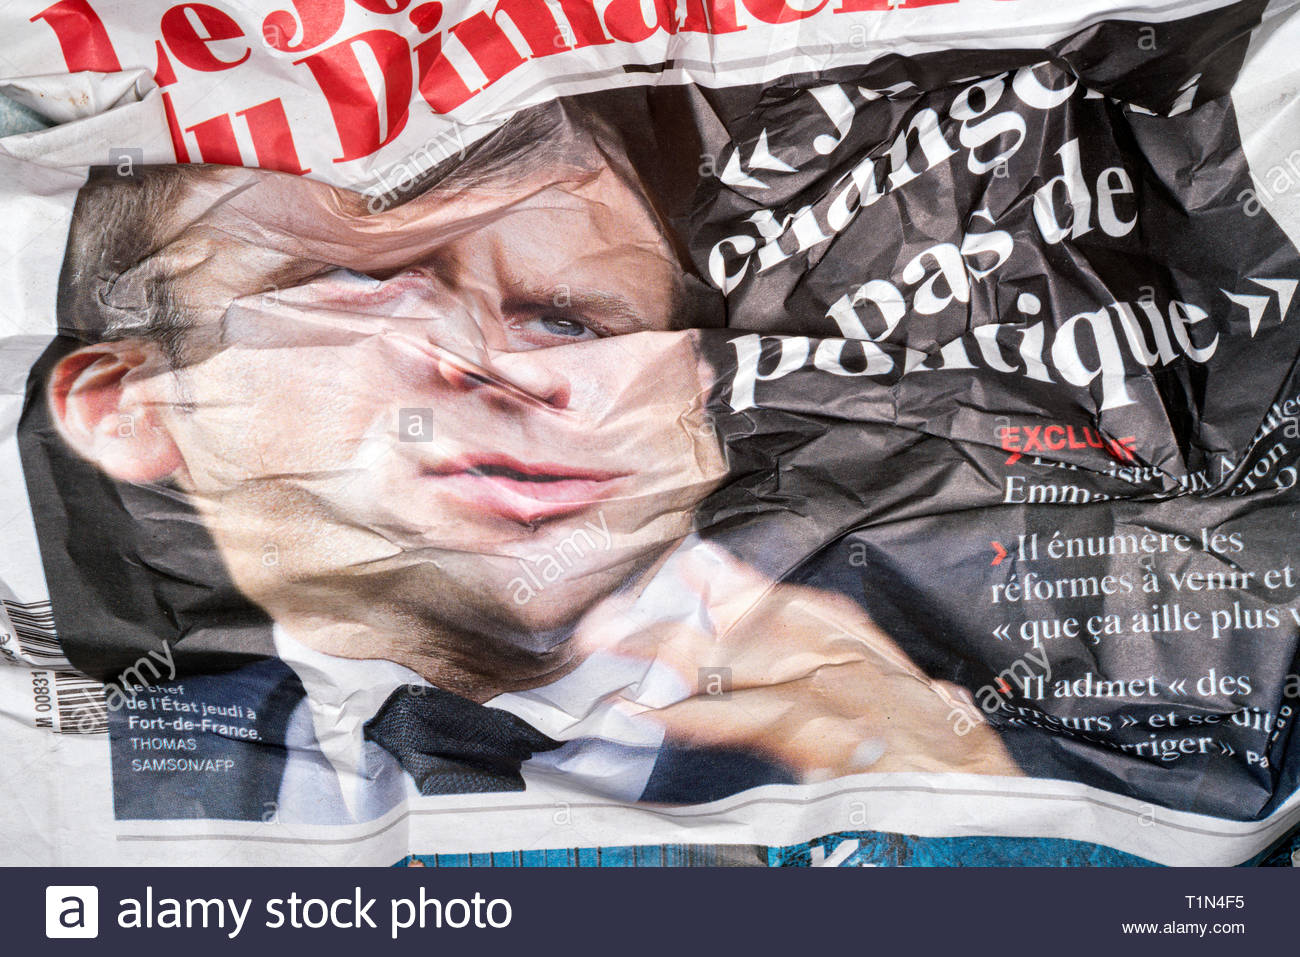 crumpled newspaper with portrait of French president Emmanuel Macron - Stock Image